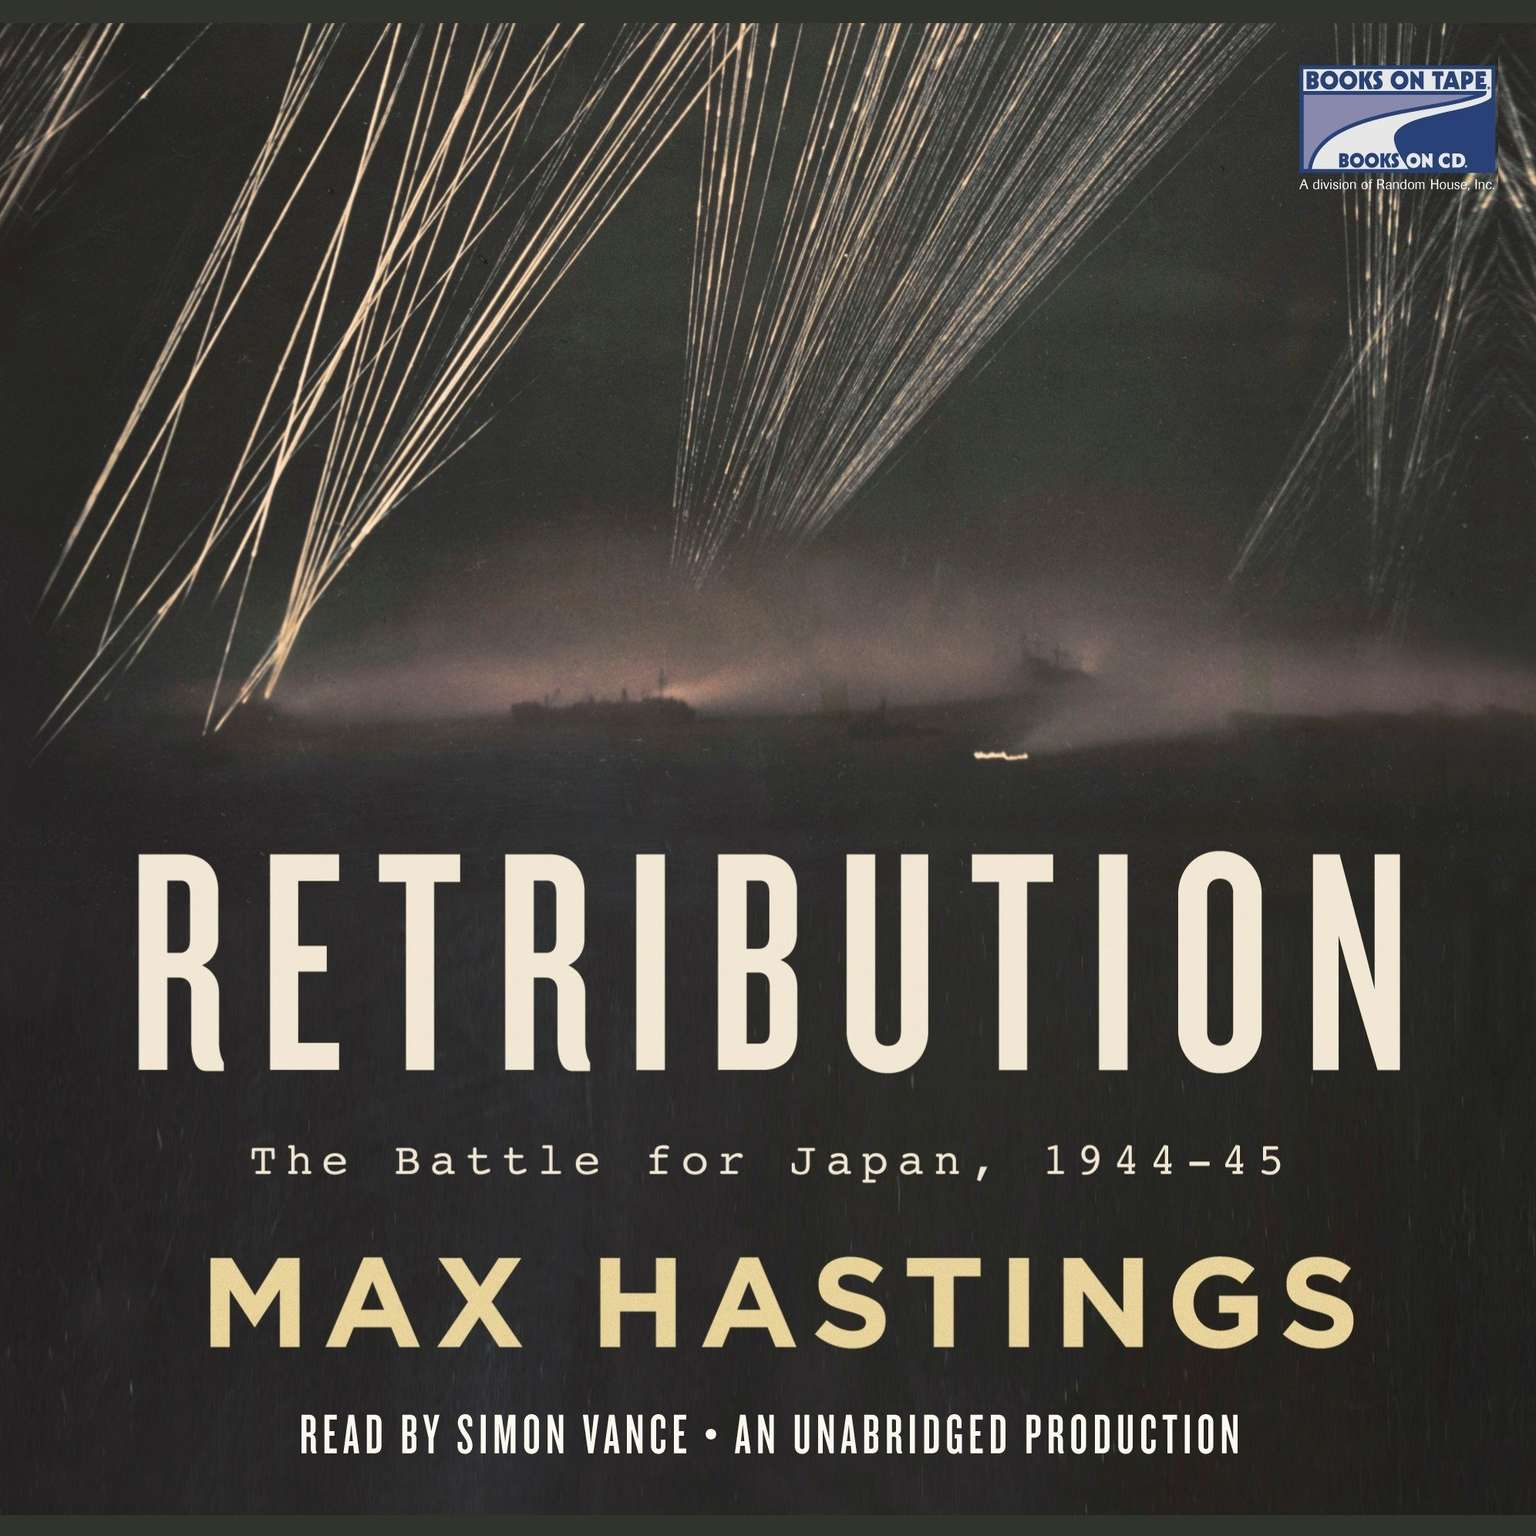 Retribution: The Battle for Japan, 1944-45 Audiobook, by Max Hastings